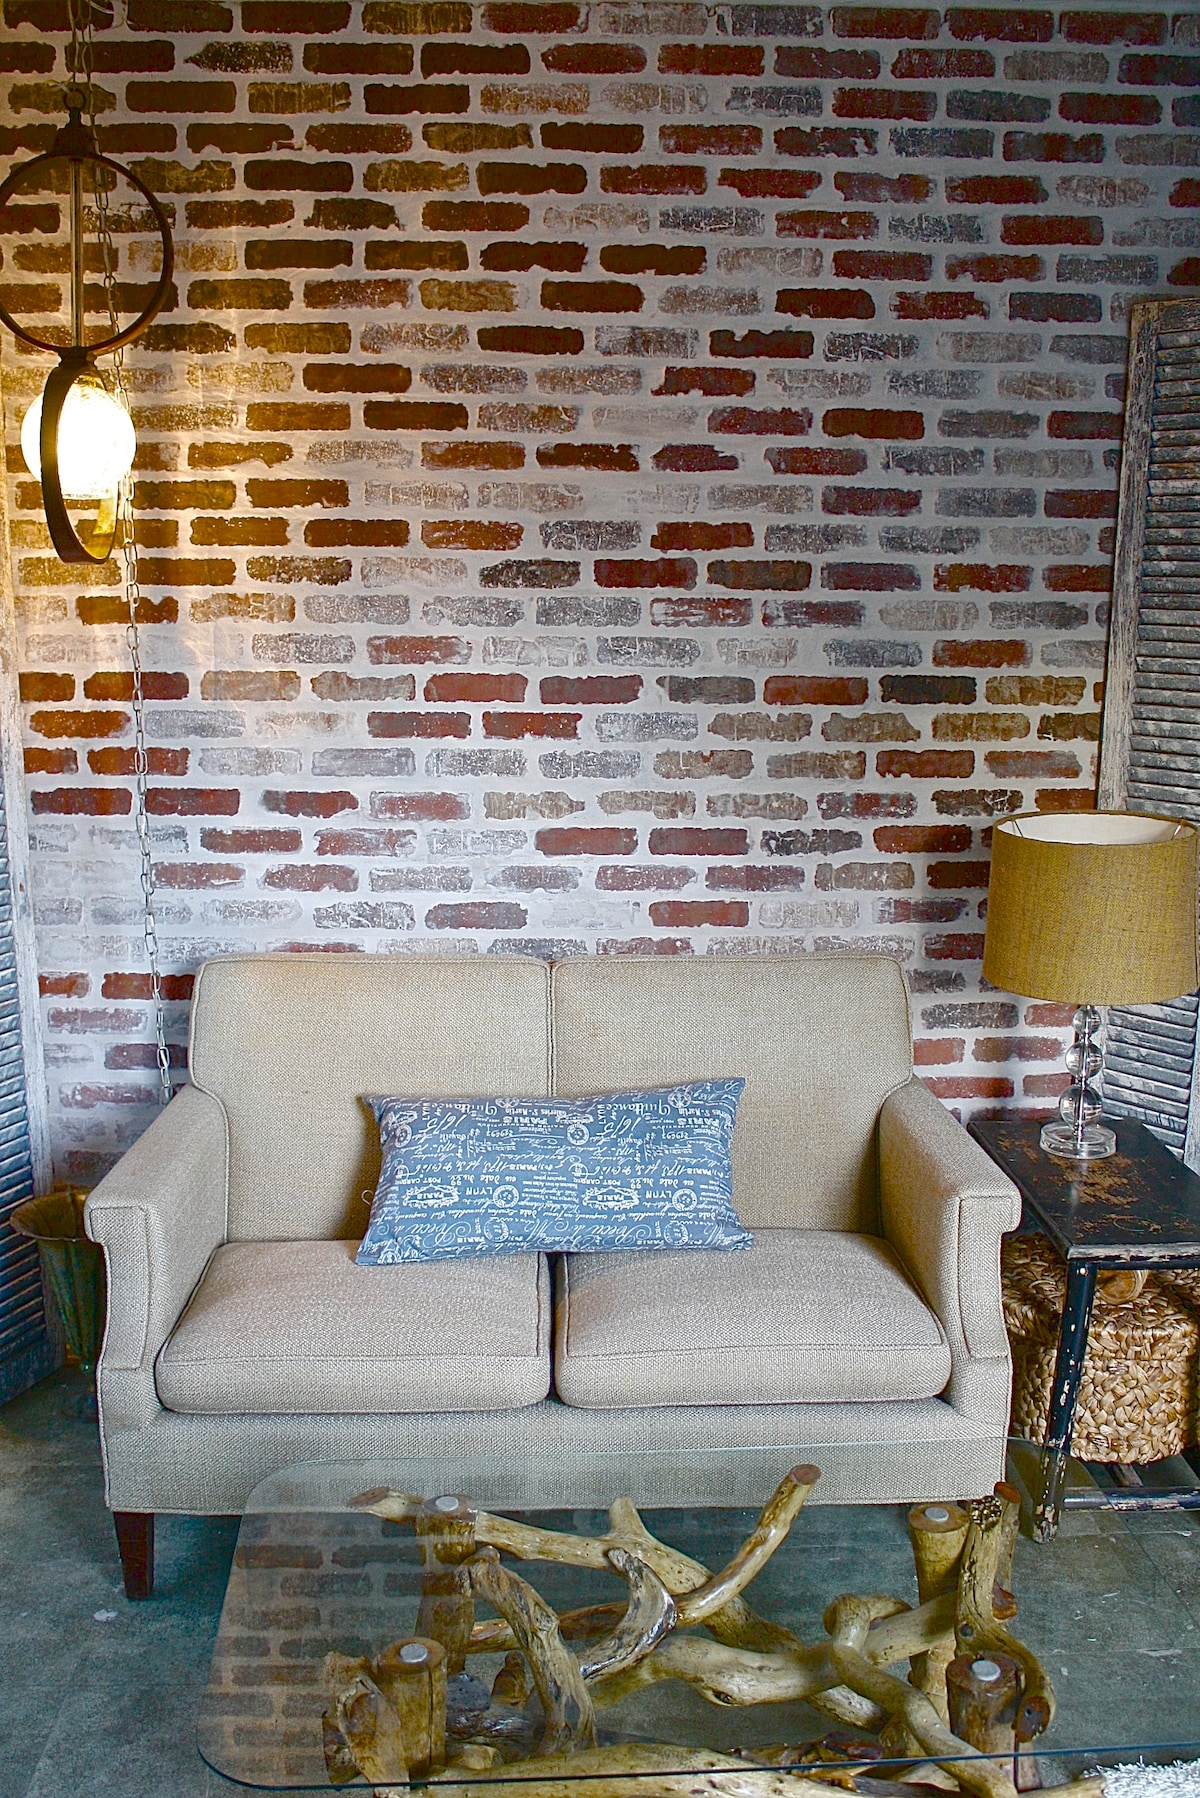 Decorated with up cycled, repurposed and vintage furniture and decor.